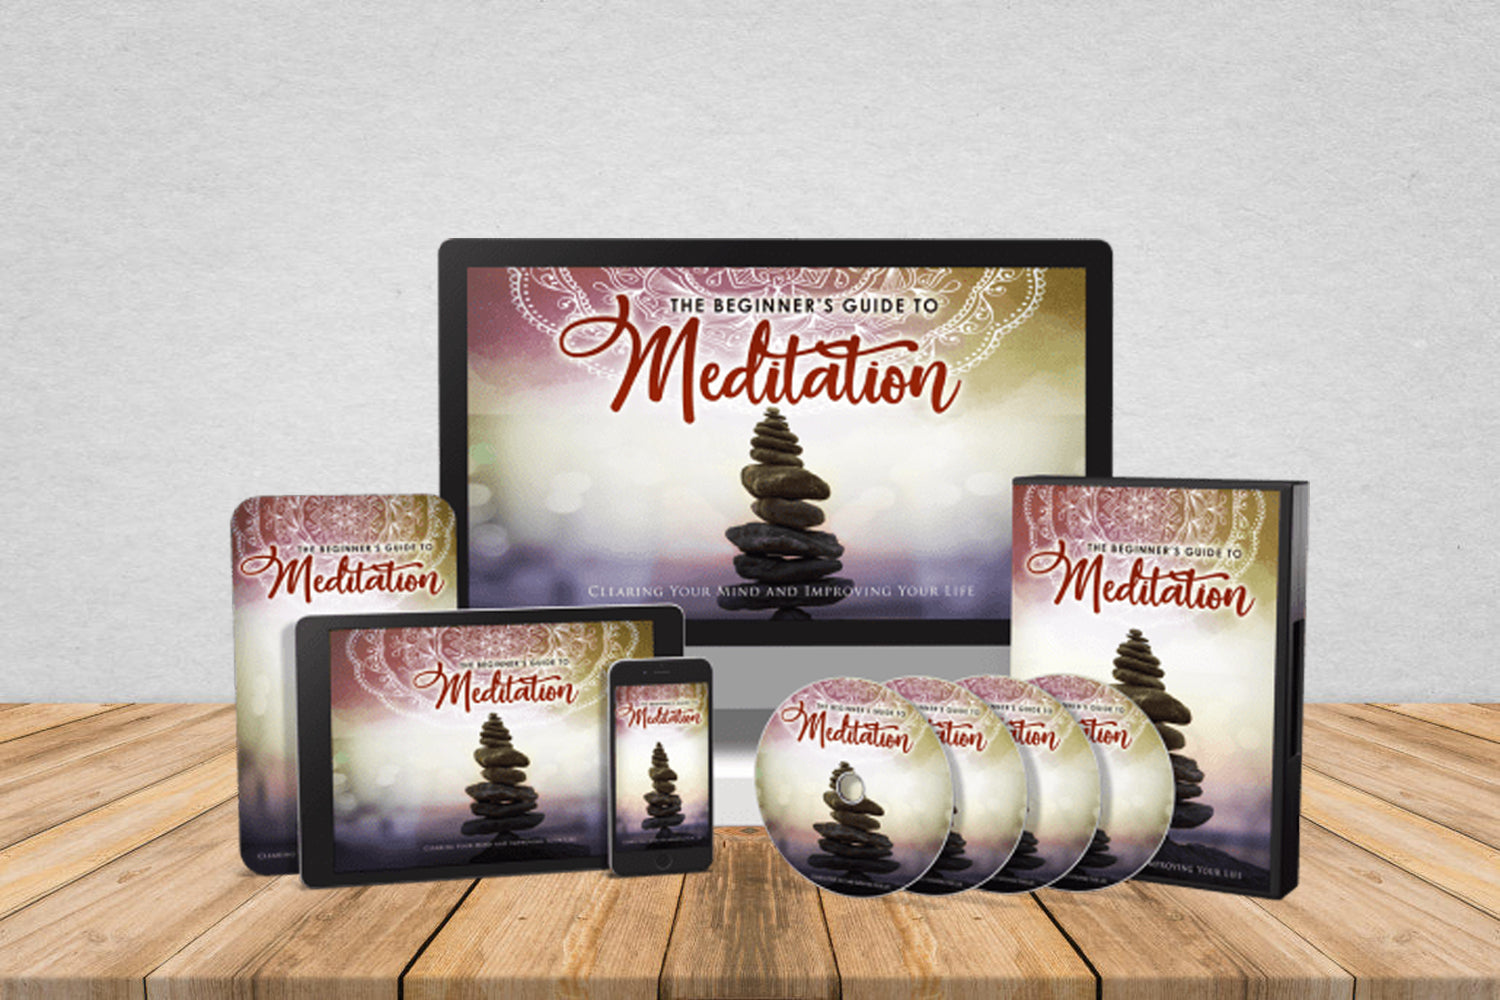 The Beginner's Guide To Meditation Video - Meditation Is A Huge Part Of A Healthy Lifestyle. It Has Become A Very Popular Subject, And For Good Reason